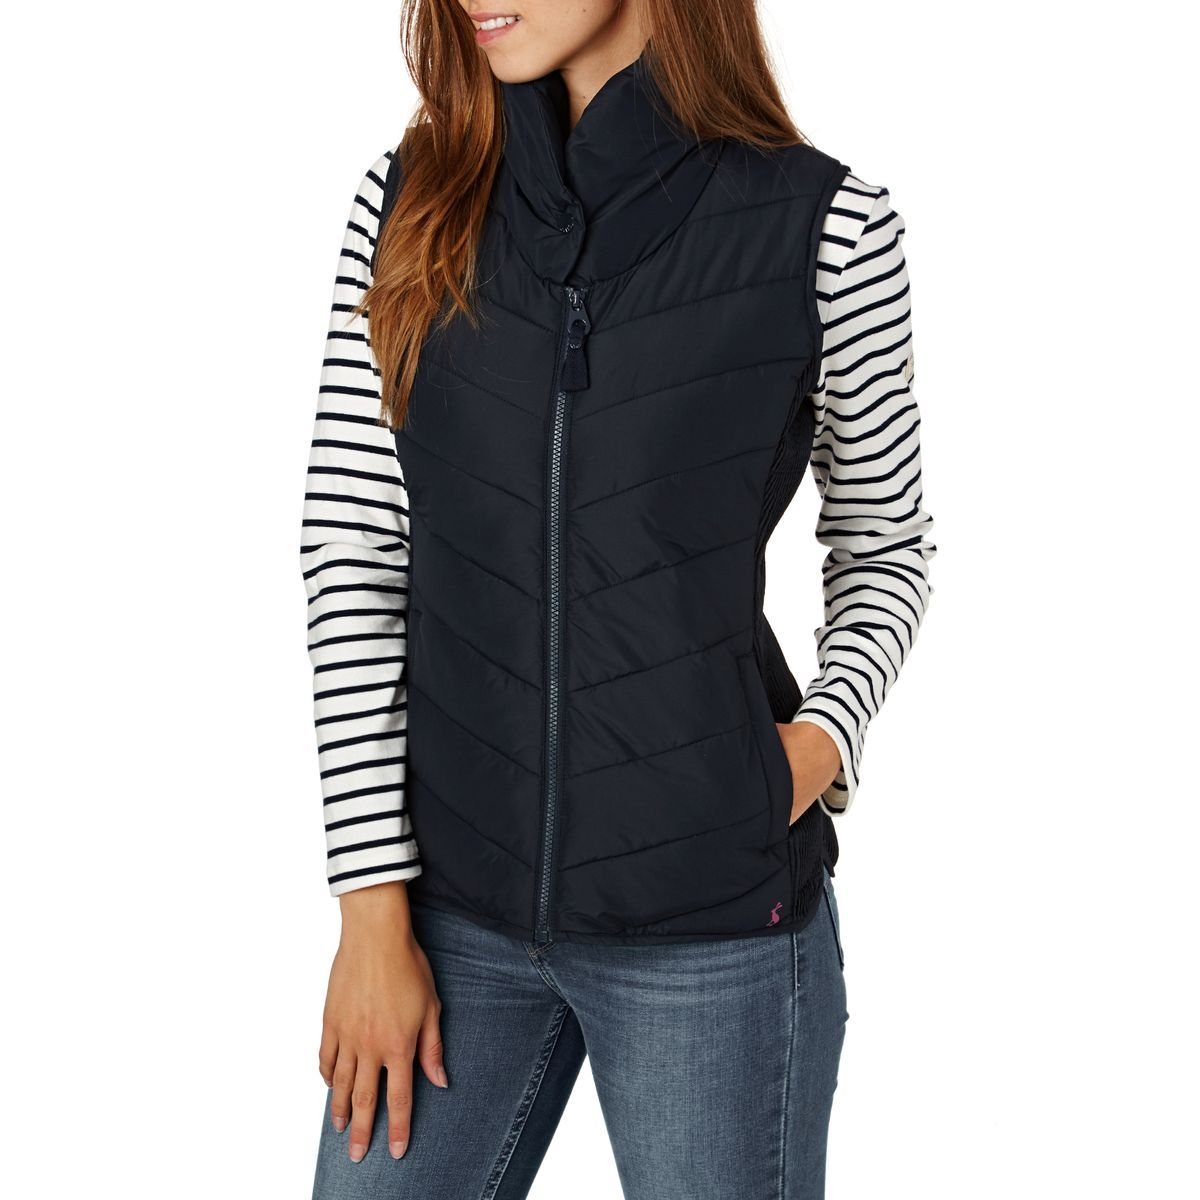 5faa5a24650 Buy Joules Larkhill Gilet Marine Navy with great prices, Free ...